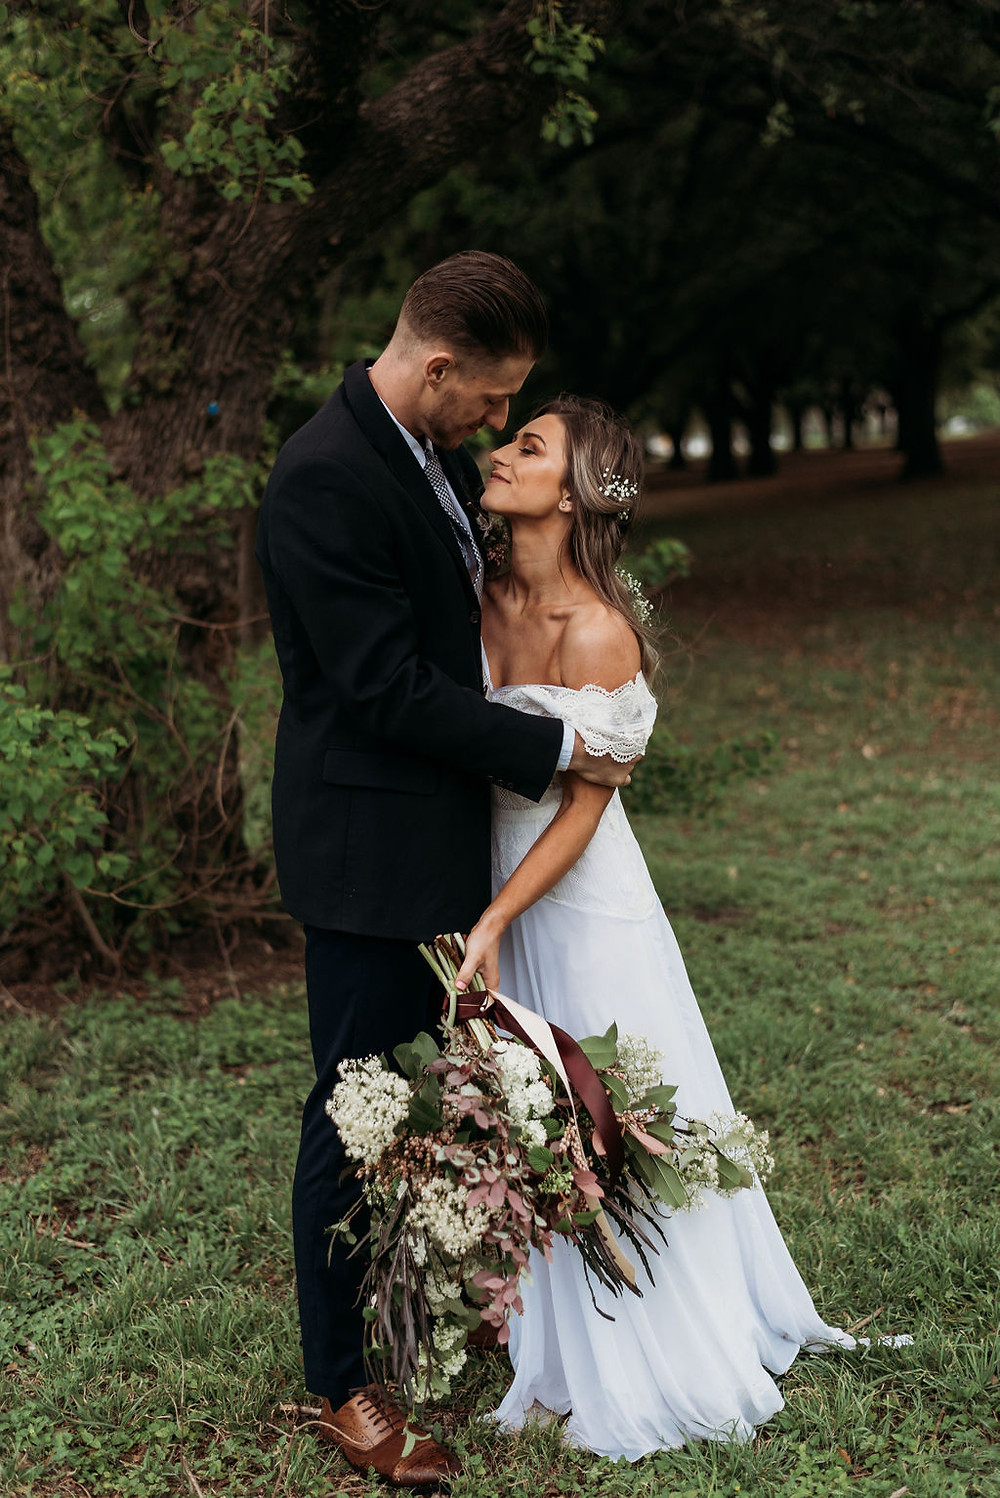 bride and groom poses. Groom looks down at bride who has her eyes closed and her dress is slipping off her shoulder. romantic newlywed photo where you can feel the love during their austin elopement